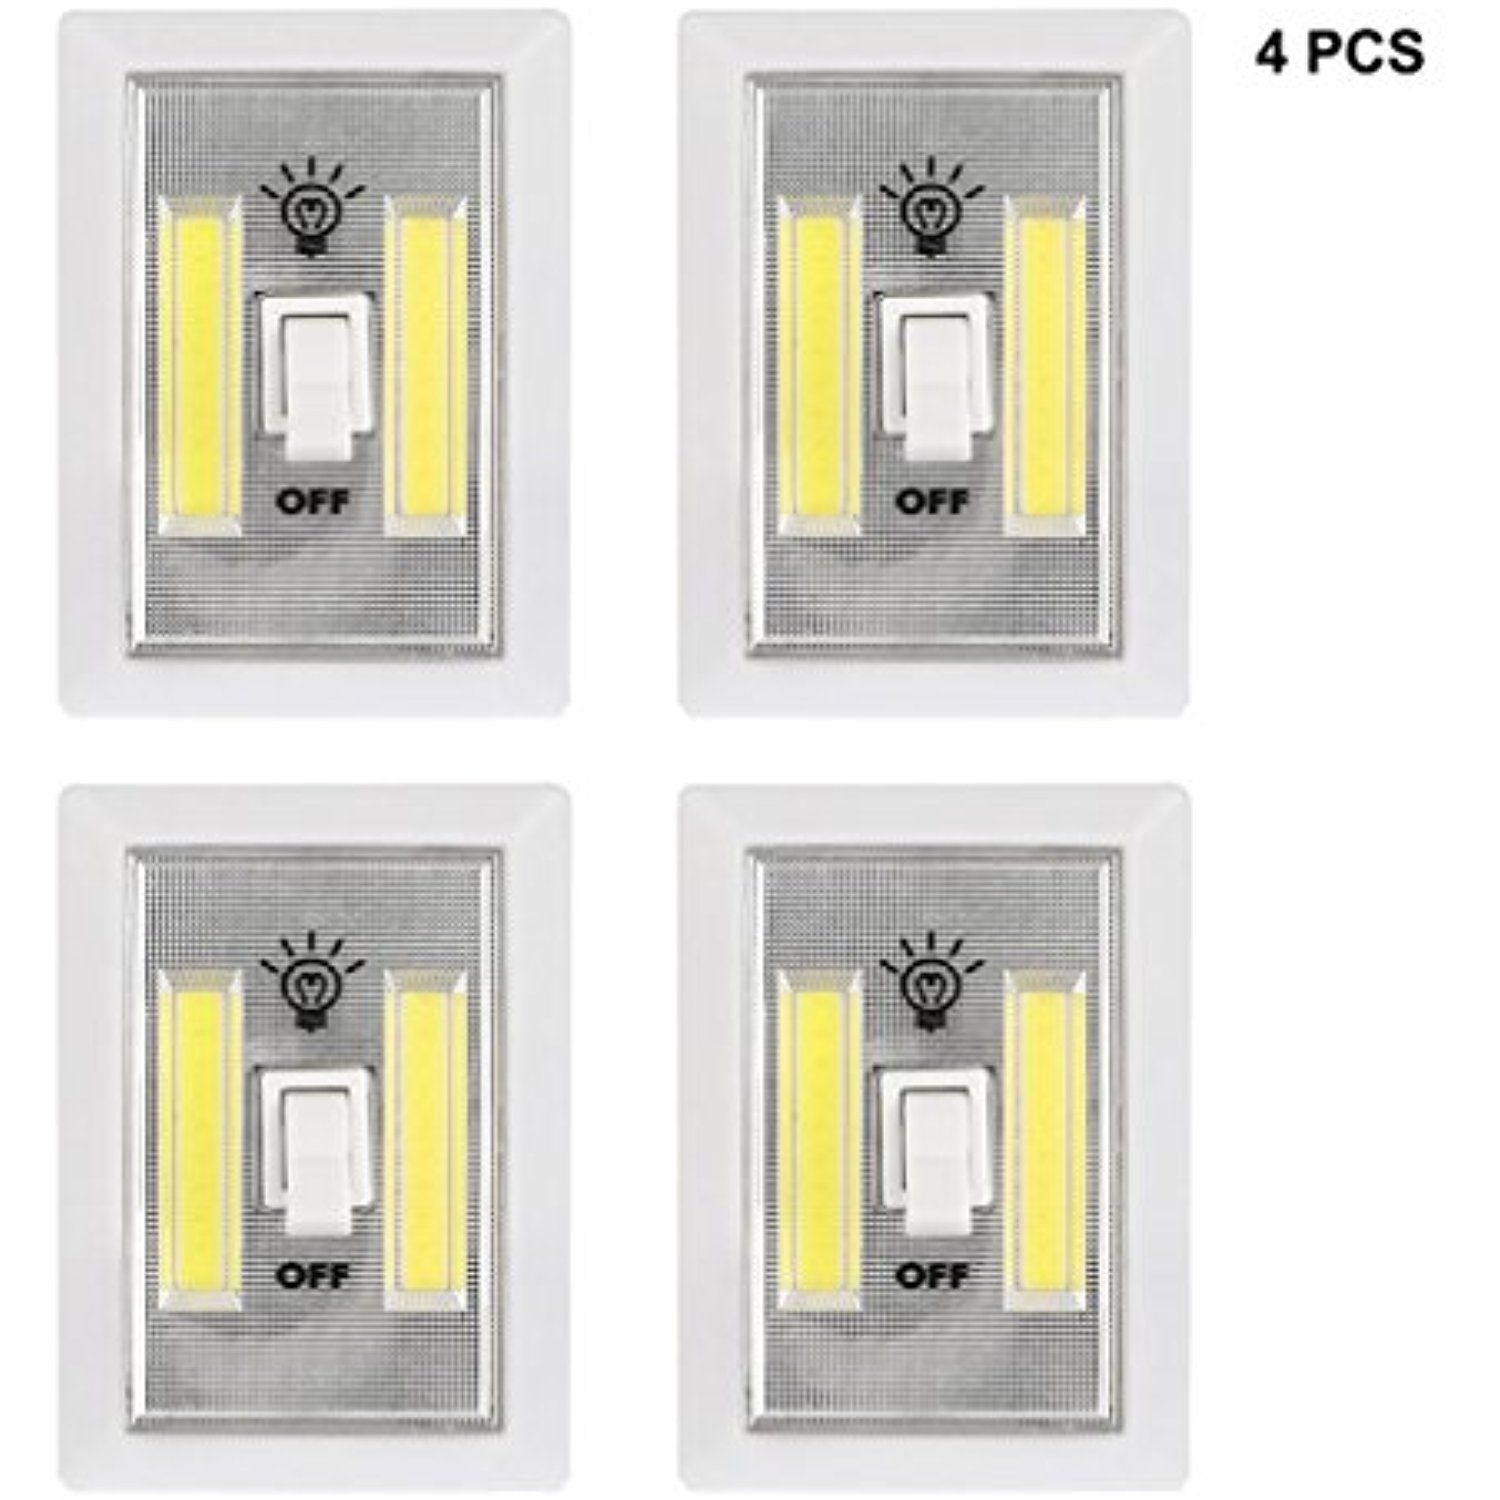 Cob Promier Dual Led Wireless Night Light With Switch Led Light Switch Wireless Night Light Light Switch